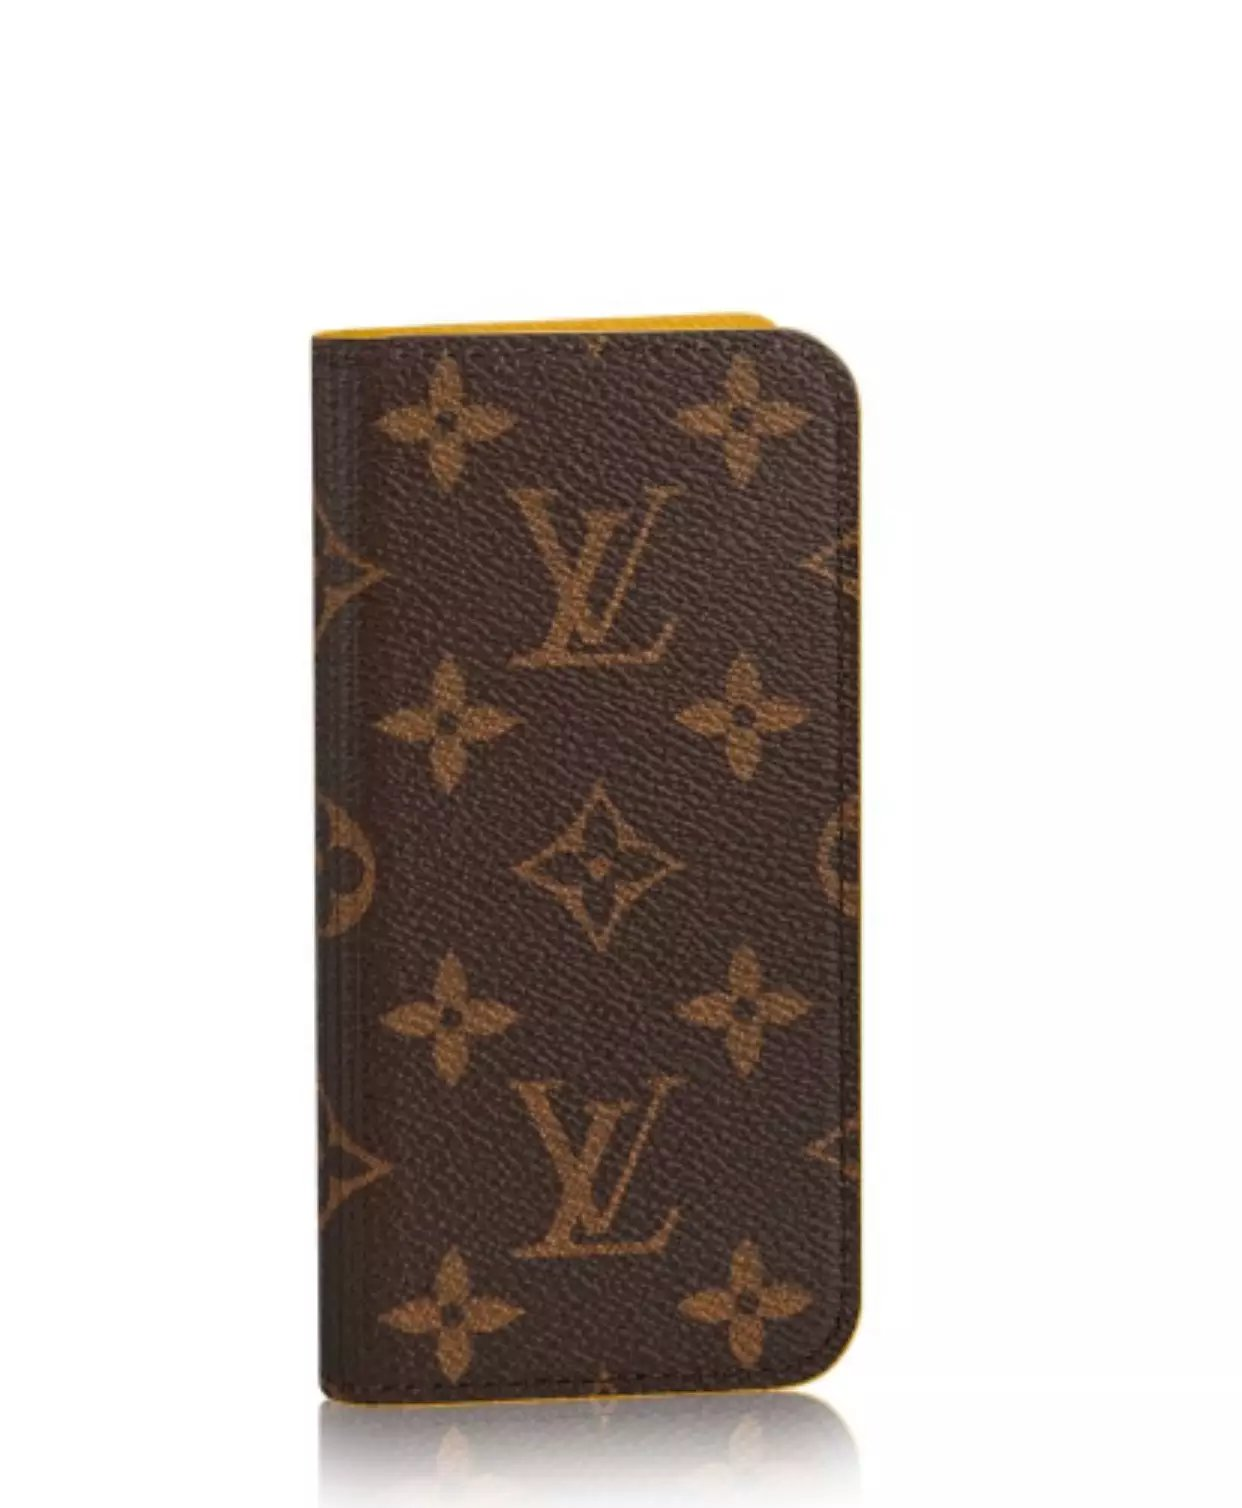 best iphone 8 Plus s cases leather case for iphone 8 Plus Louis Vuitton iphone 8 Plus case all iPhone 8 Plus cases cover i phone 6 iPhone 8 Plusg cases iPhone 8 Plus mophie juice pack plus phone covers iPhone 8 Plus in case